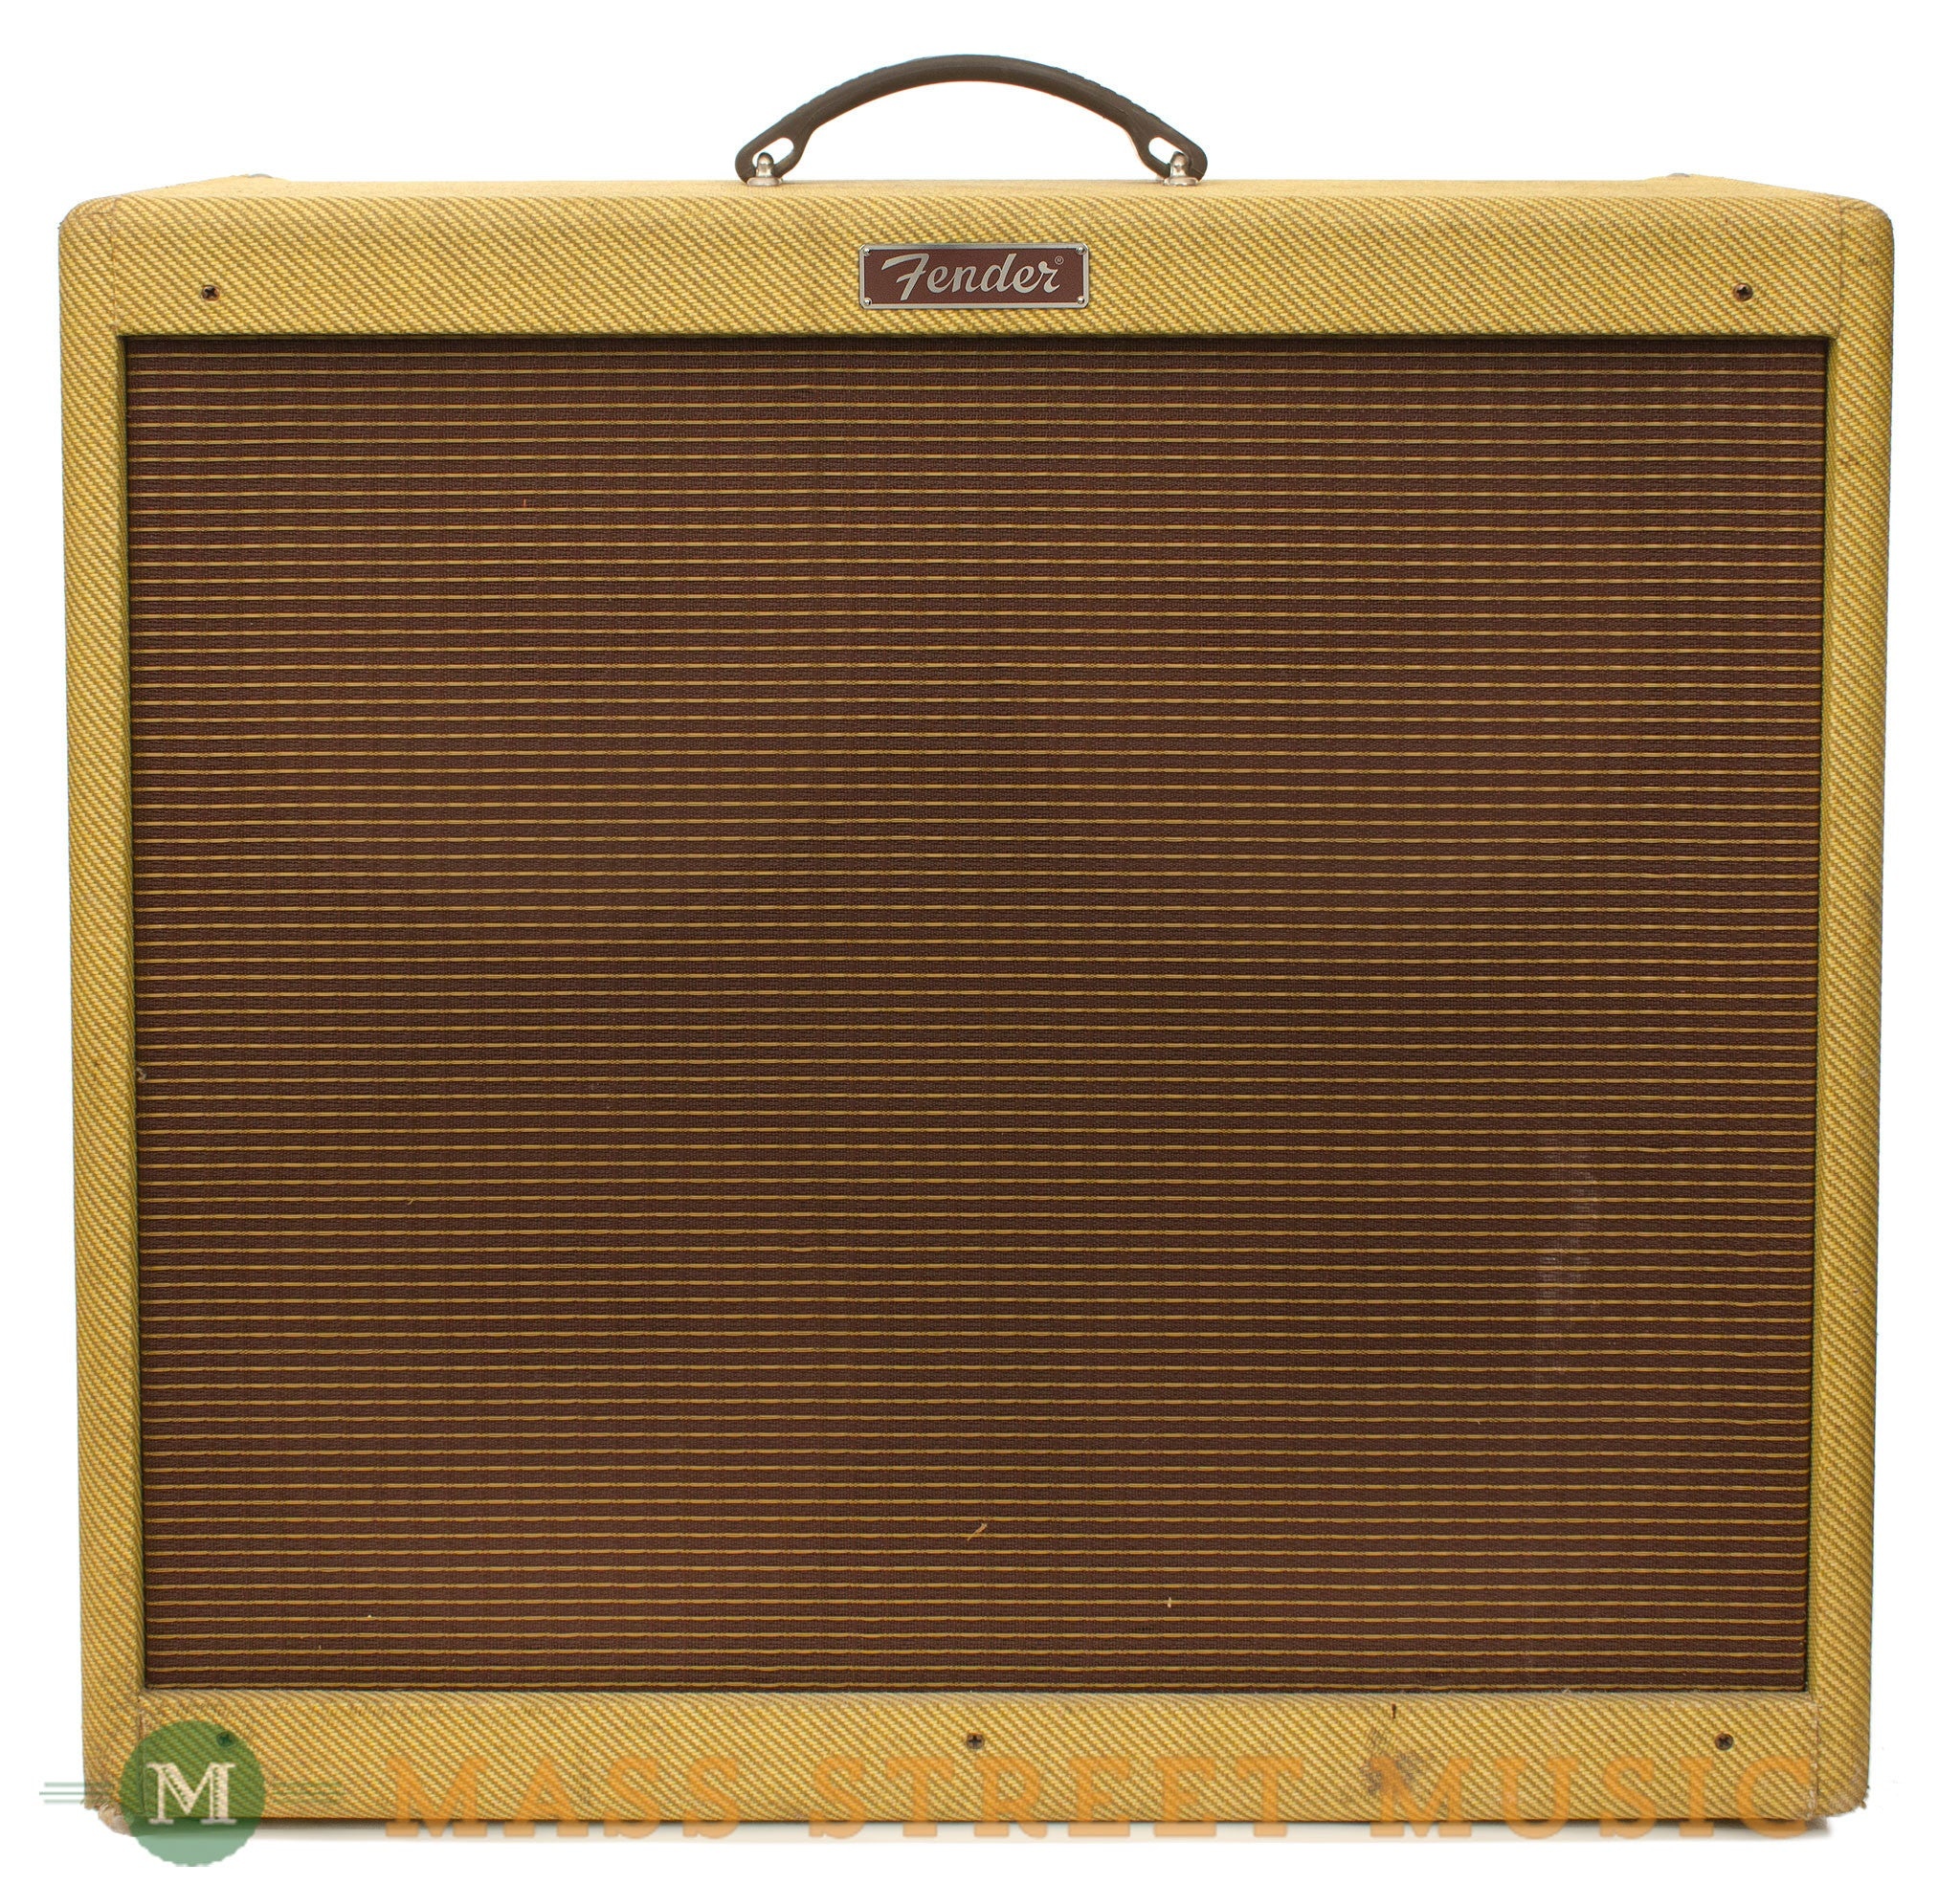 fender blues deville 4x10 1994 combo amp used with footswitch mass street music store. Black Bedroom Furniture Sets. Home Design Ideas